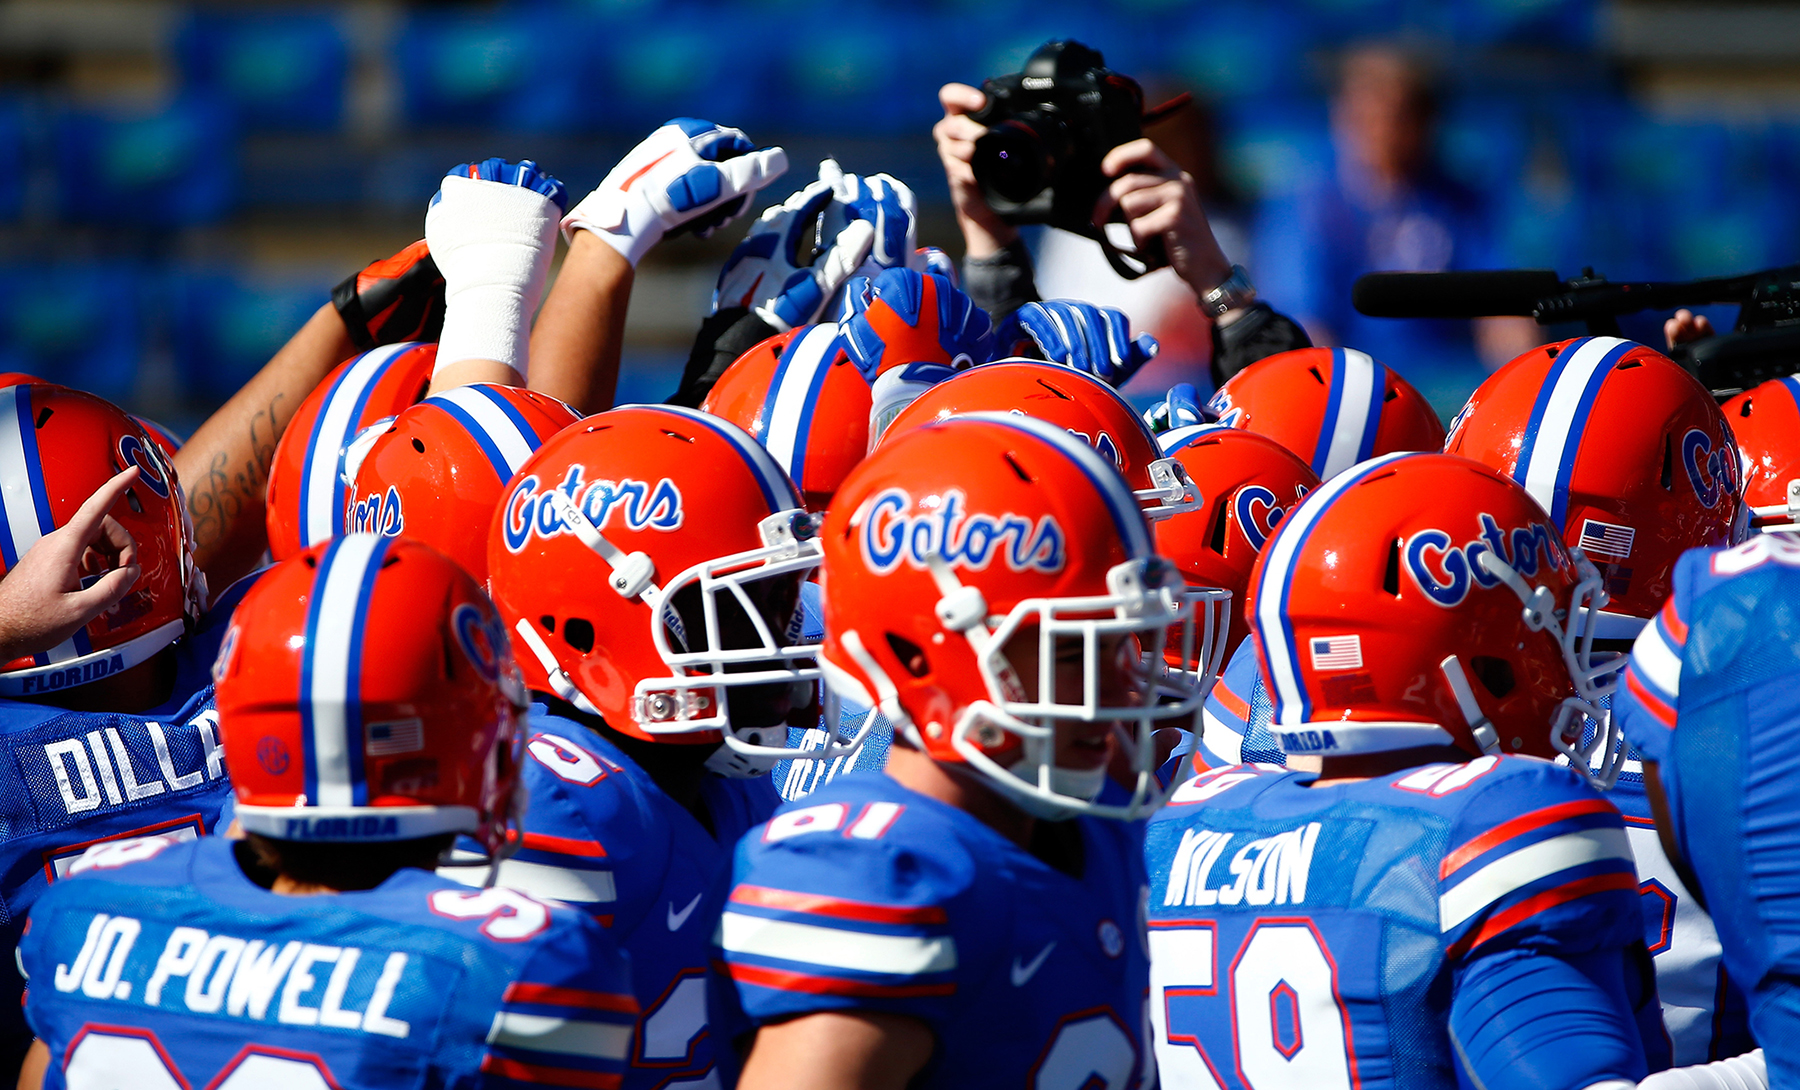 88803c8b6ddb The Five Worst Losses in Gator Football History